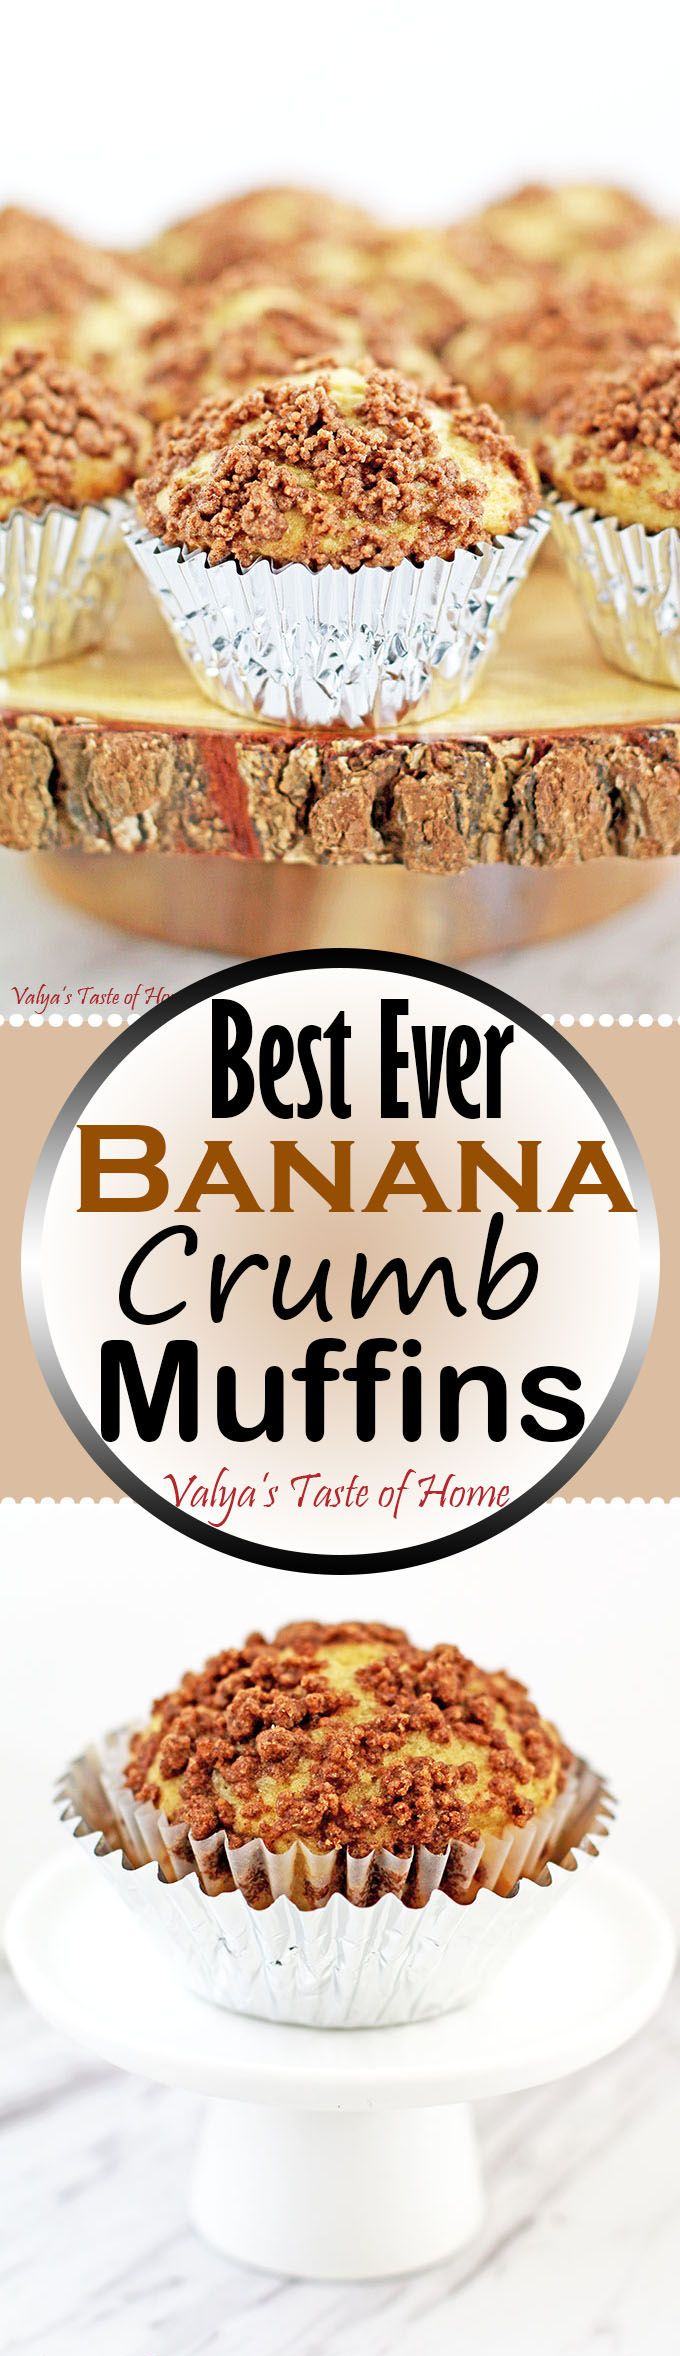 These Best Ever Banana Crumb Muffins are the easiest thing you can ever make! They are always a wonderful snack to have available at hand. When made at home, they consist of only a few and best-quality ingredients compare to the store bought version, but taste a million times better! As they freeze perfectly, you can always make double portions to last the busy days you are unable to drop things to bake.